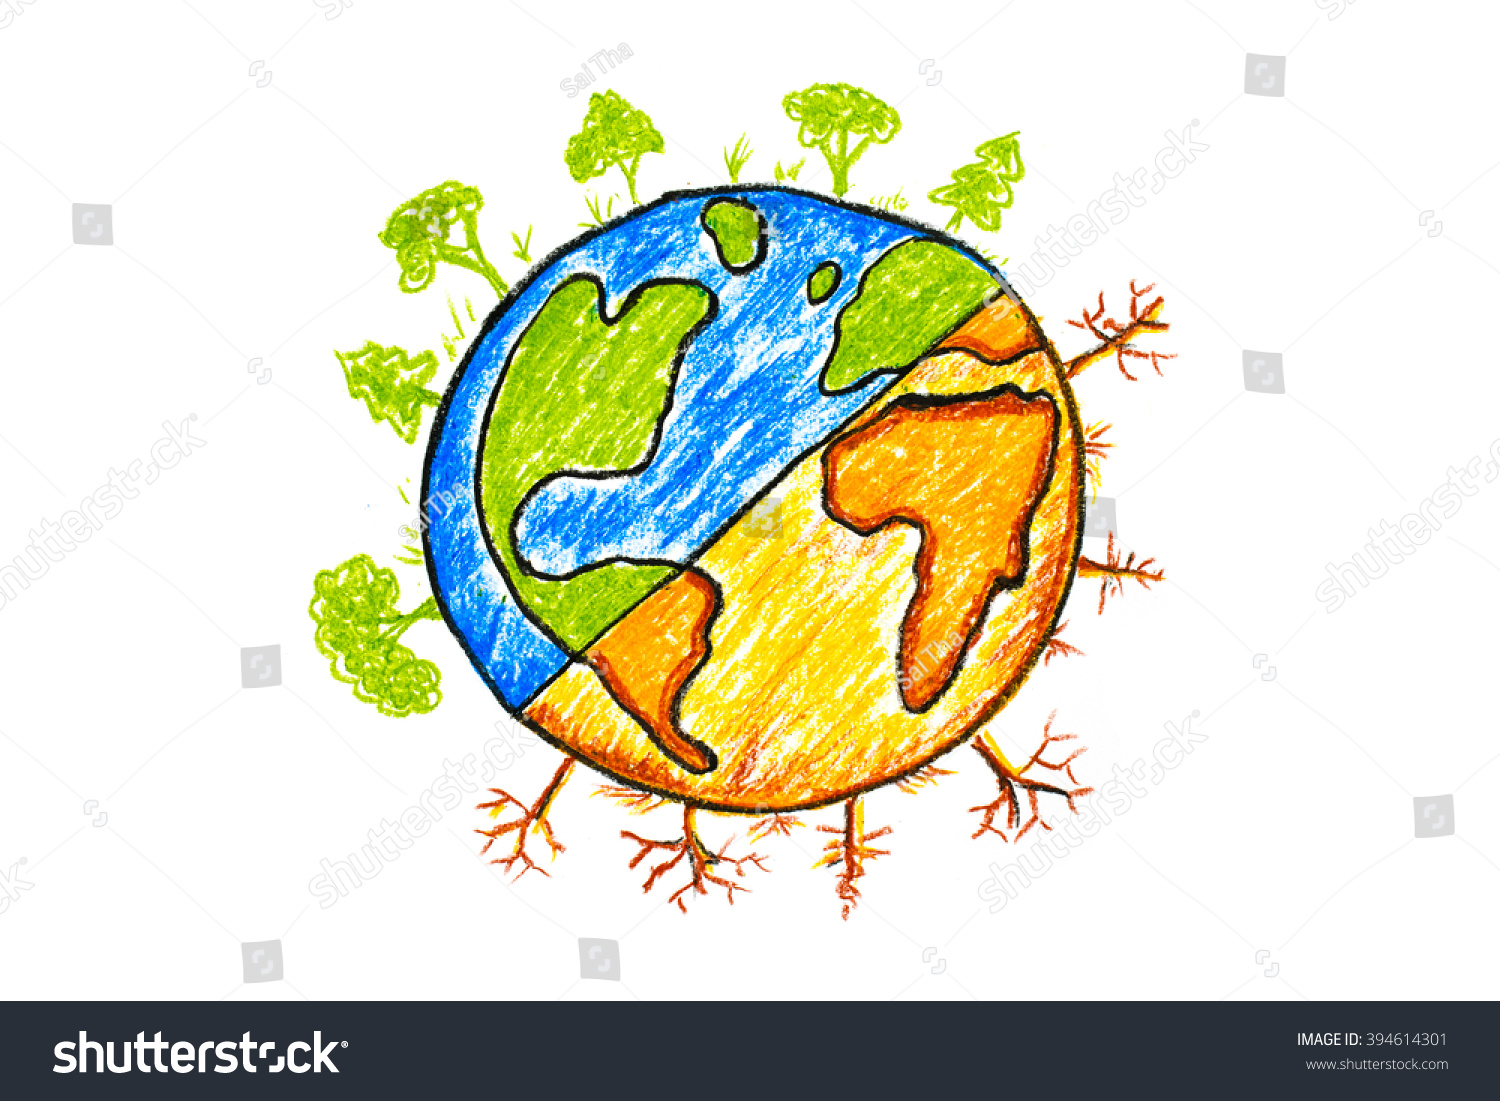 Hand drawn earth change icon on white global warming concept